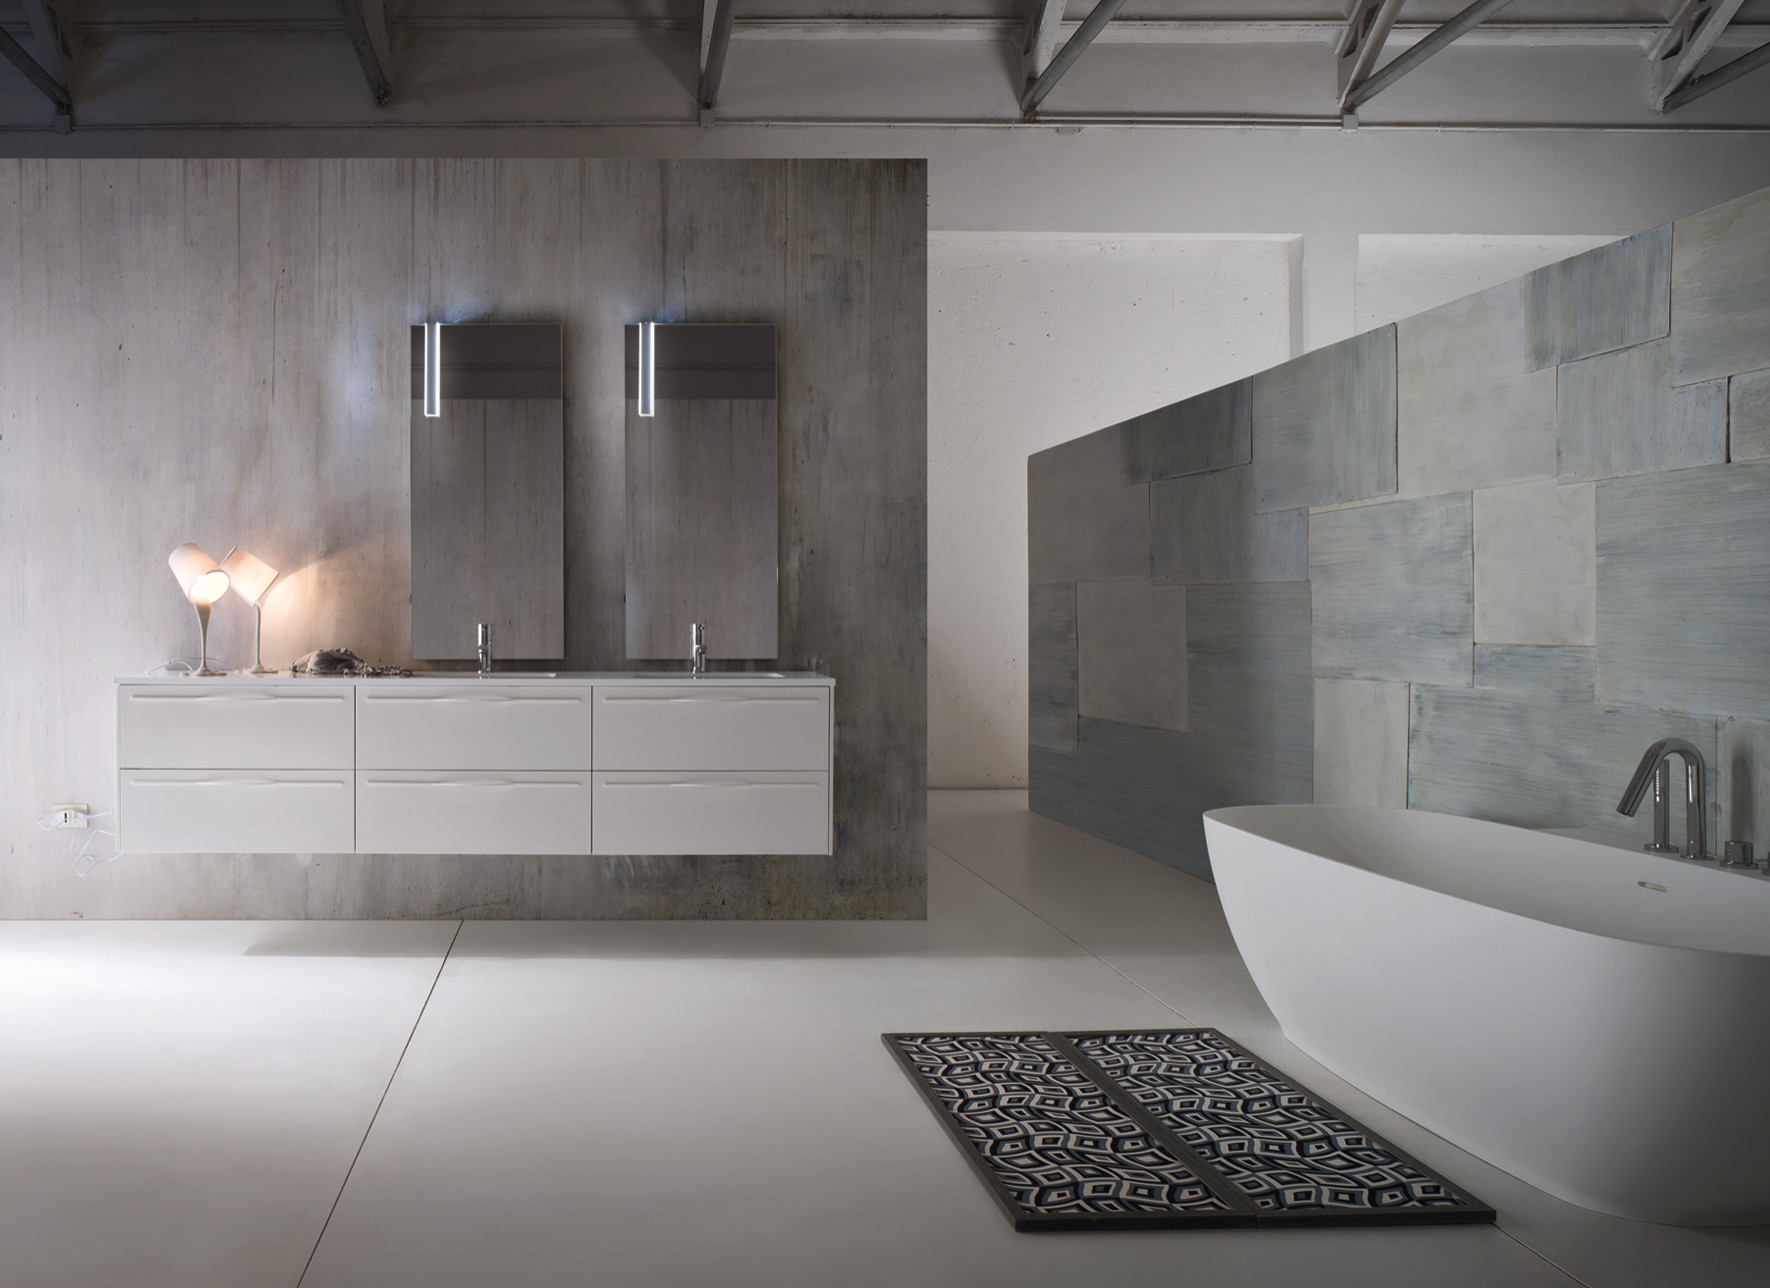 75 Beautiful Gray Bathroom With Recycled Glass Countertops Pictures Ideas January 2021 Houzz